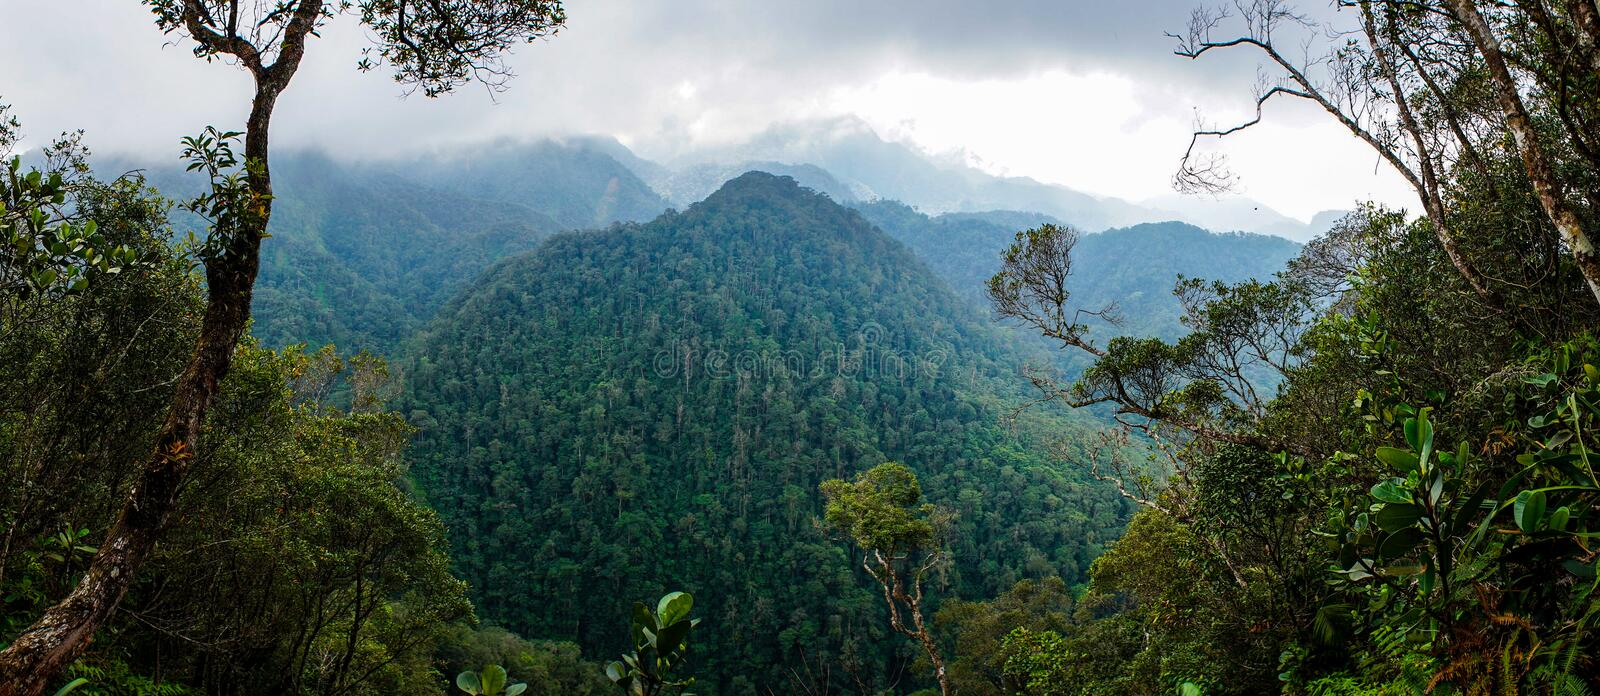 Forest view in PANACAM National Park in Honduras.  royalty free stock photos